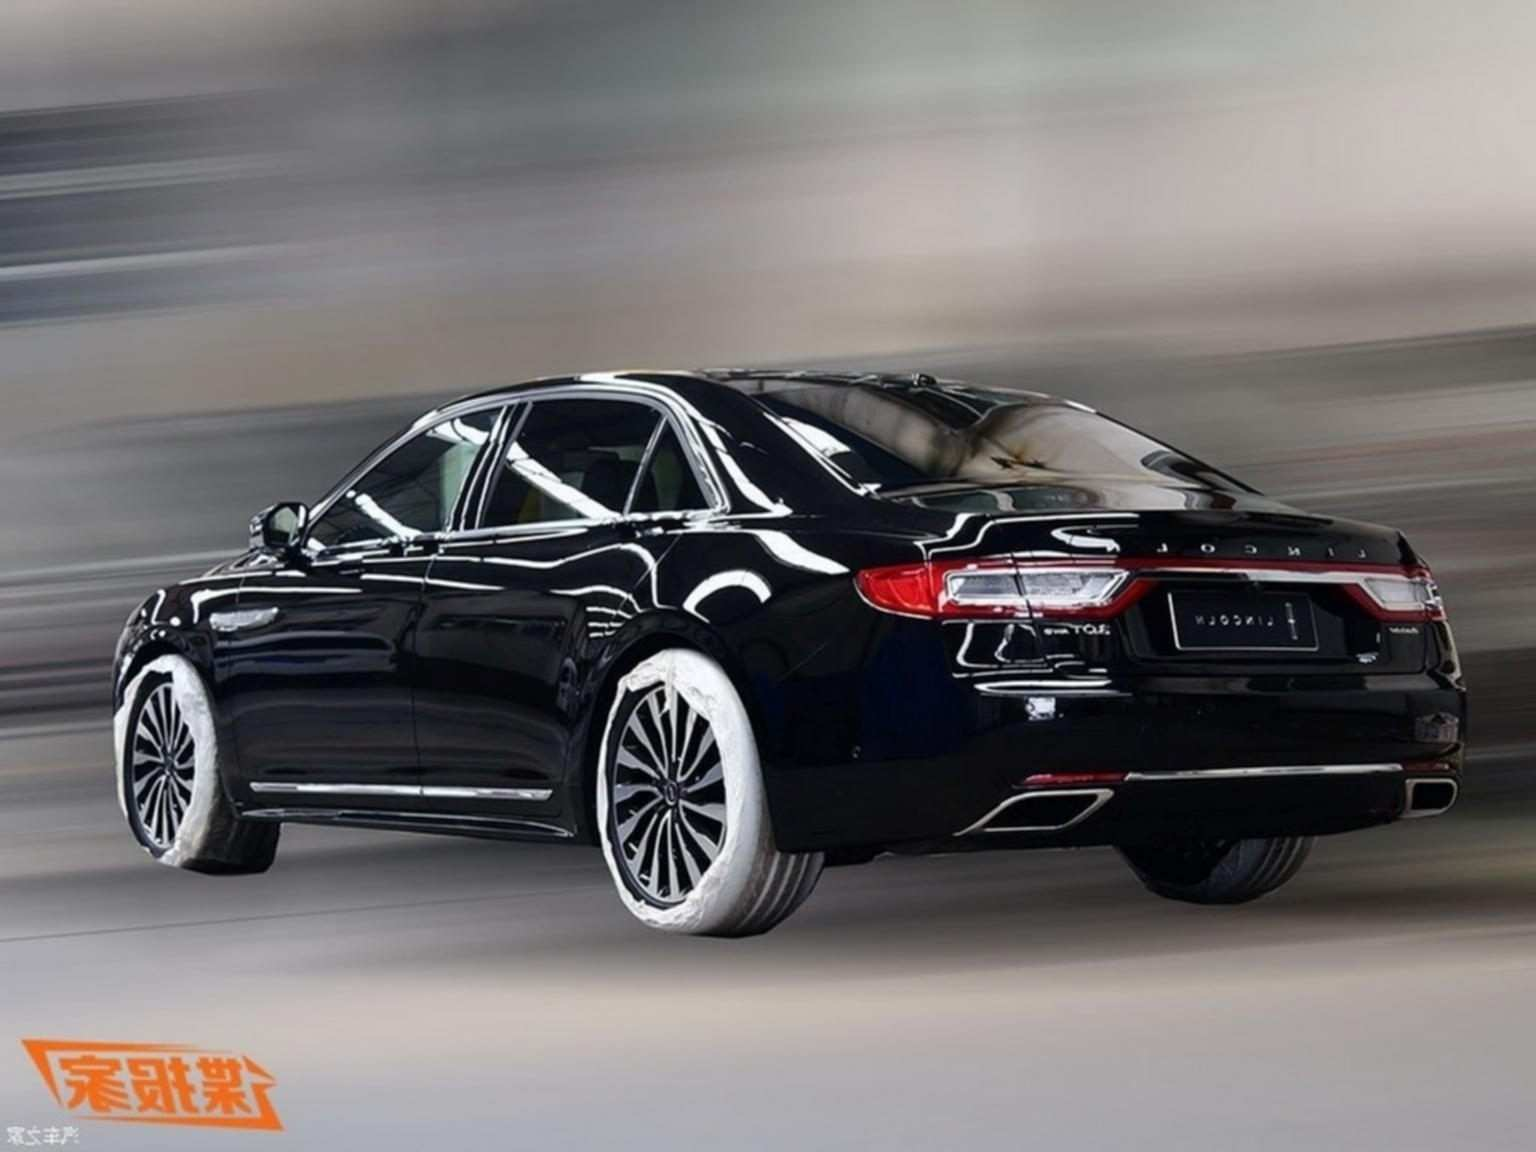 57 The Best 2020 Lincoln Continental Exterior And Interior